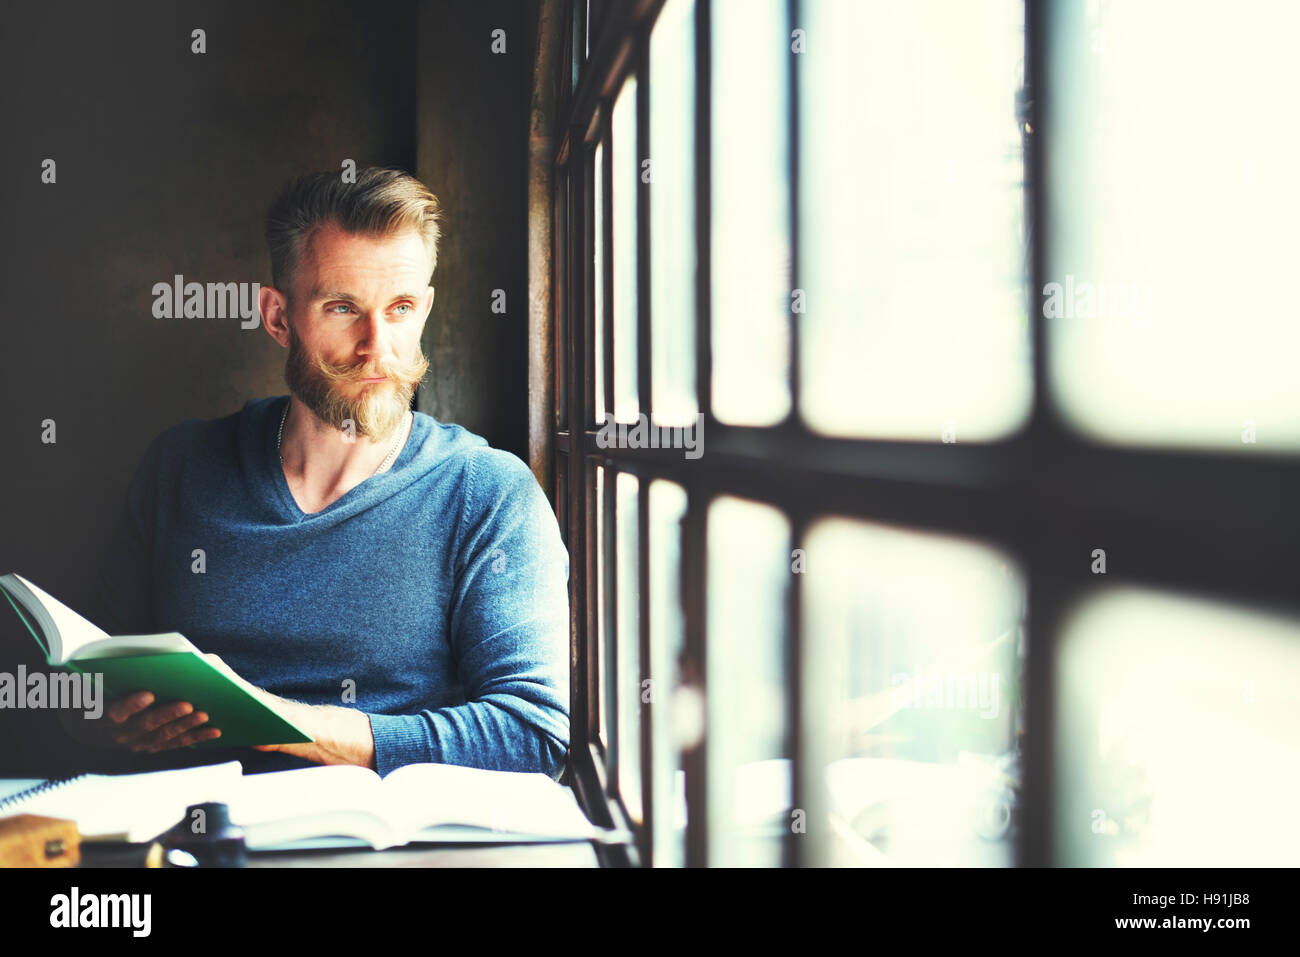 Mna Reading Book Lifestyle Relaxation Concept - Stock Image